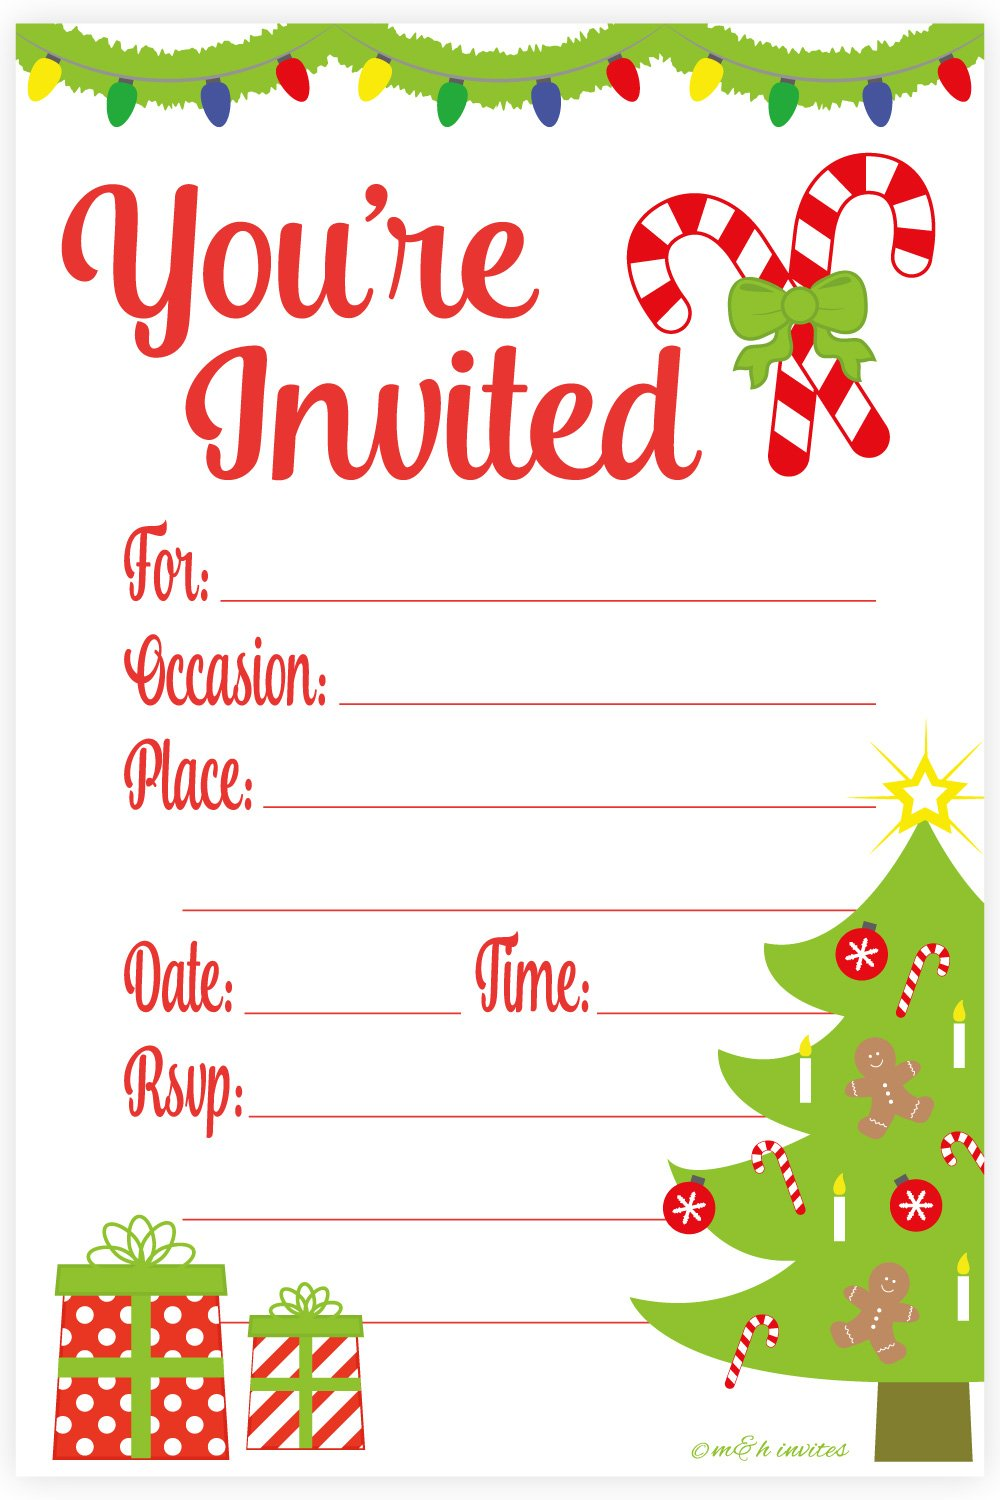 Amazon.com: Snowflake Classic Christmas Invitations - Fill ...